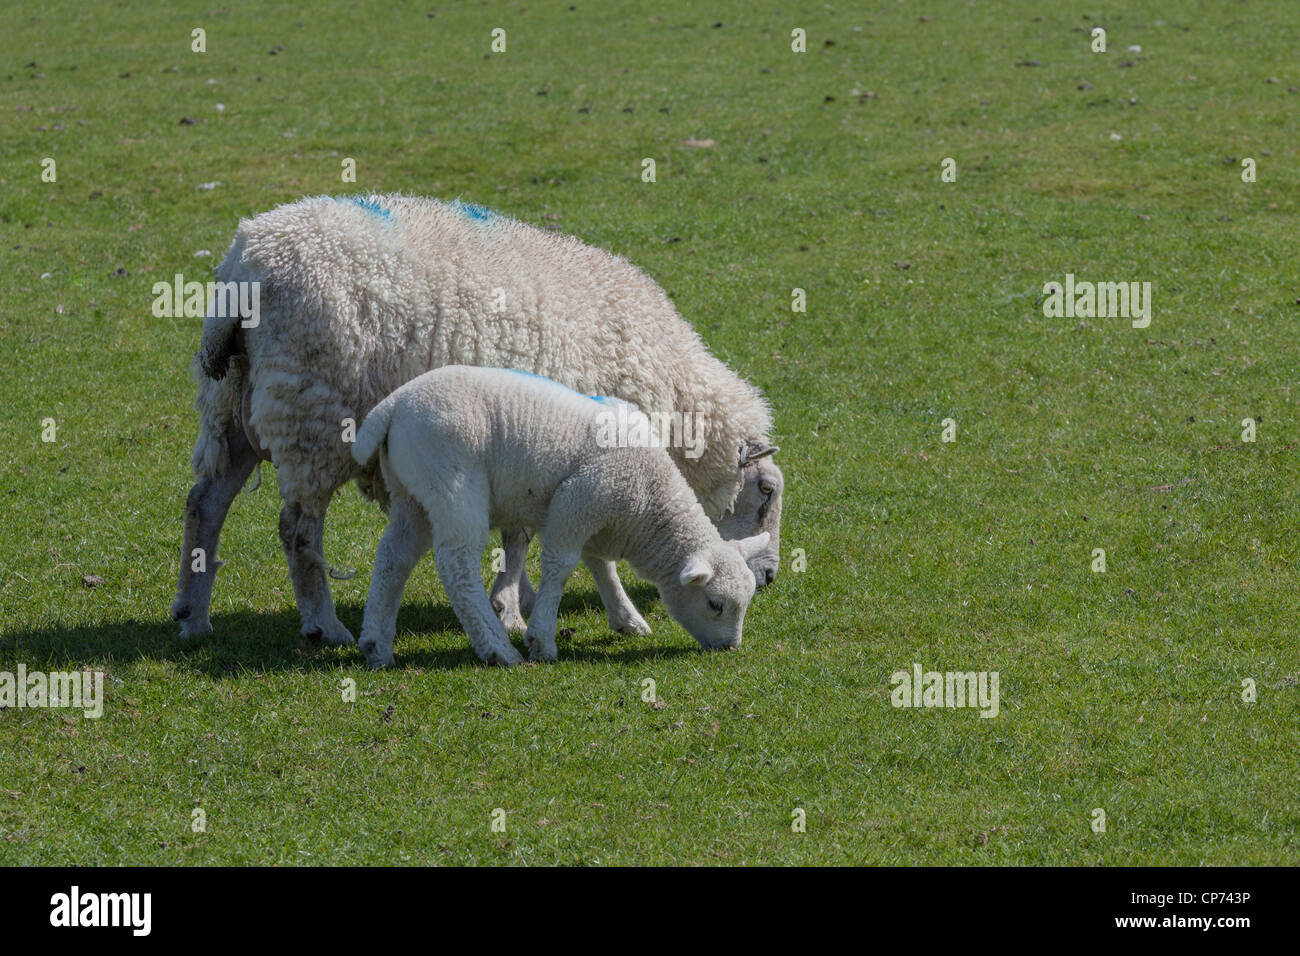 Ewe and her lamb on Romney Marsh, Near Rye, East Sussex. - Stock Image